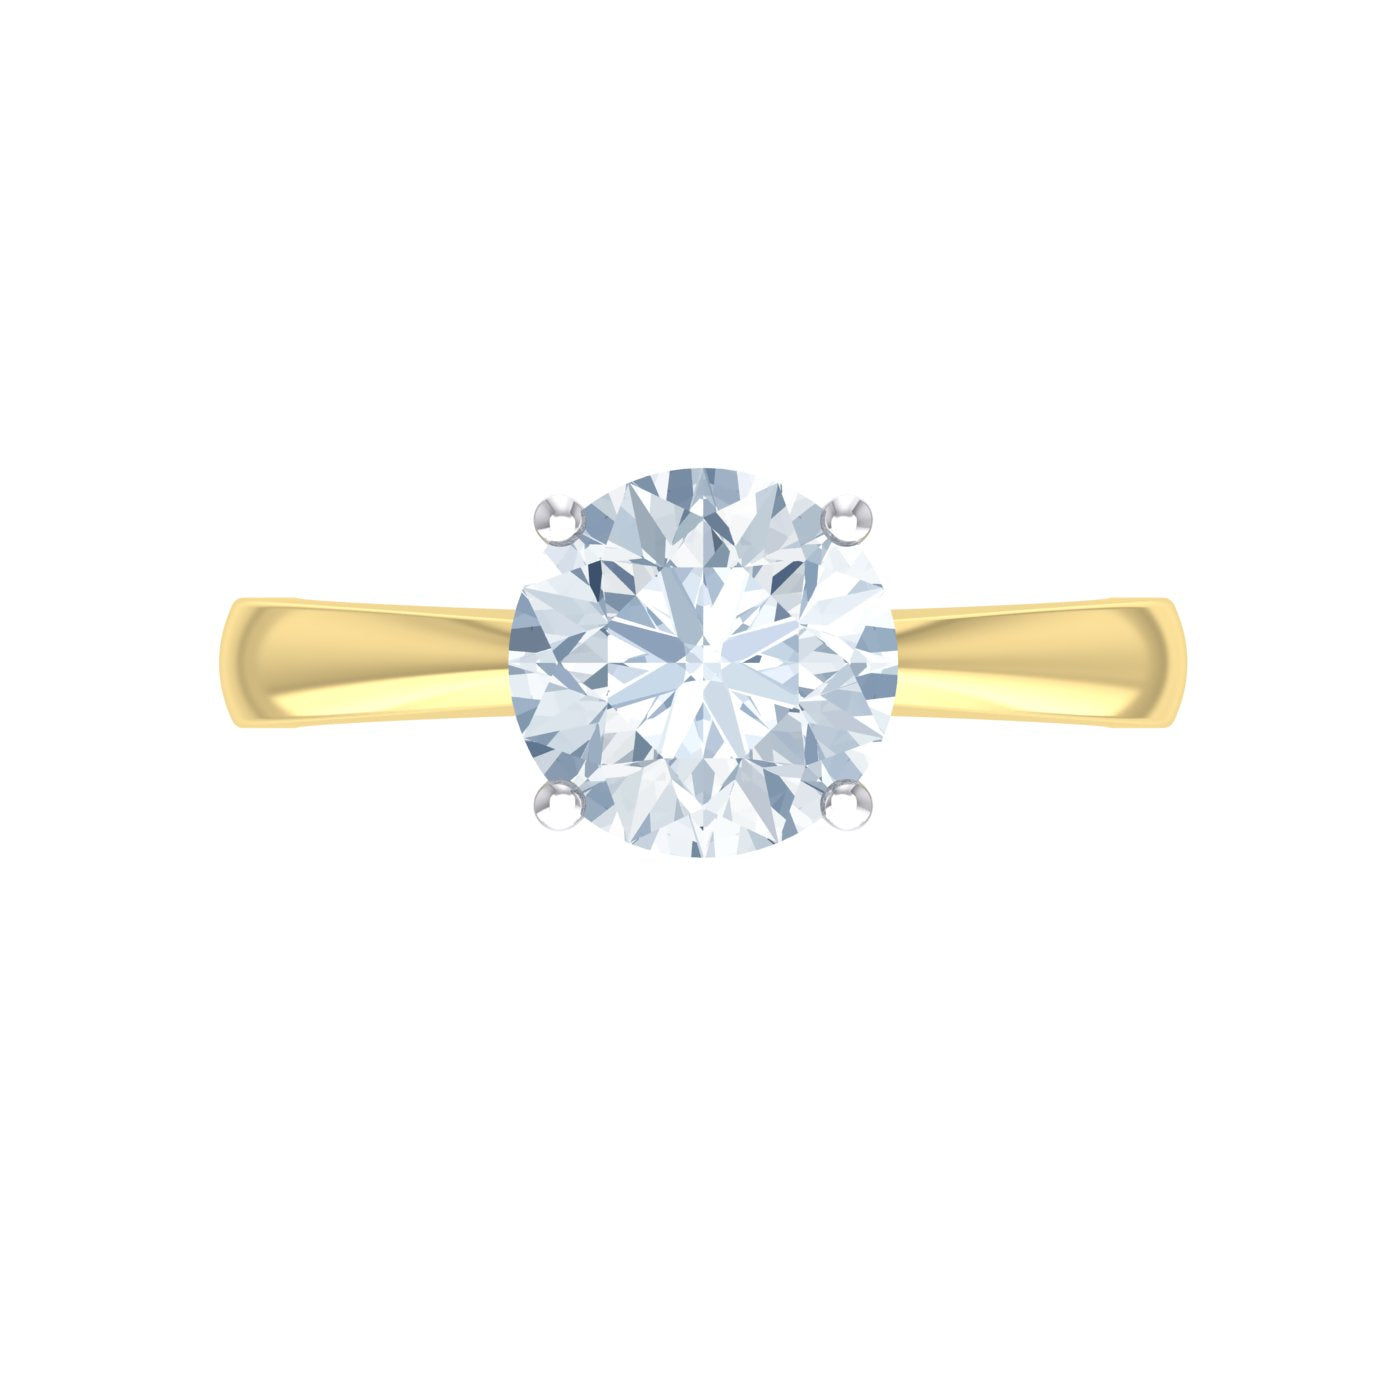 Alice Herald's 4 claw solitaire engagement ring in 18kt gold